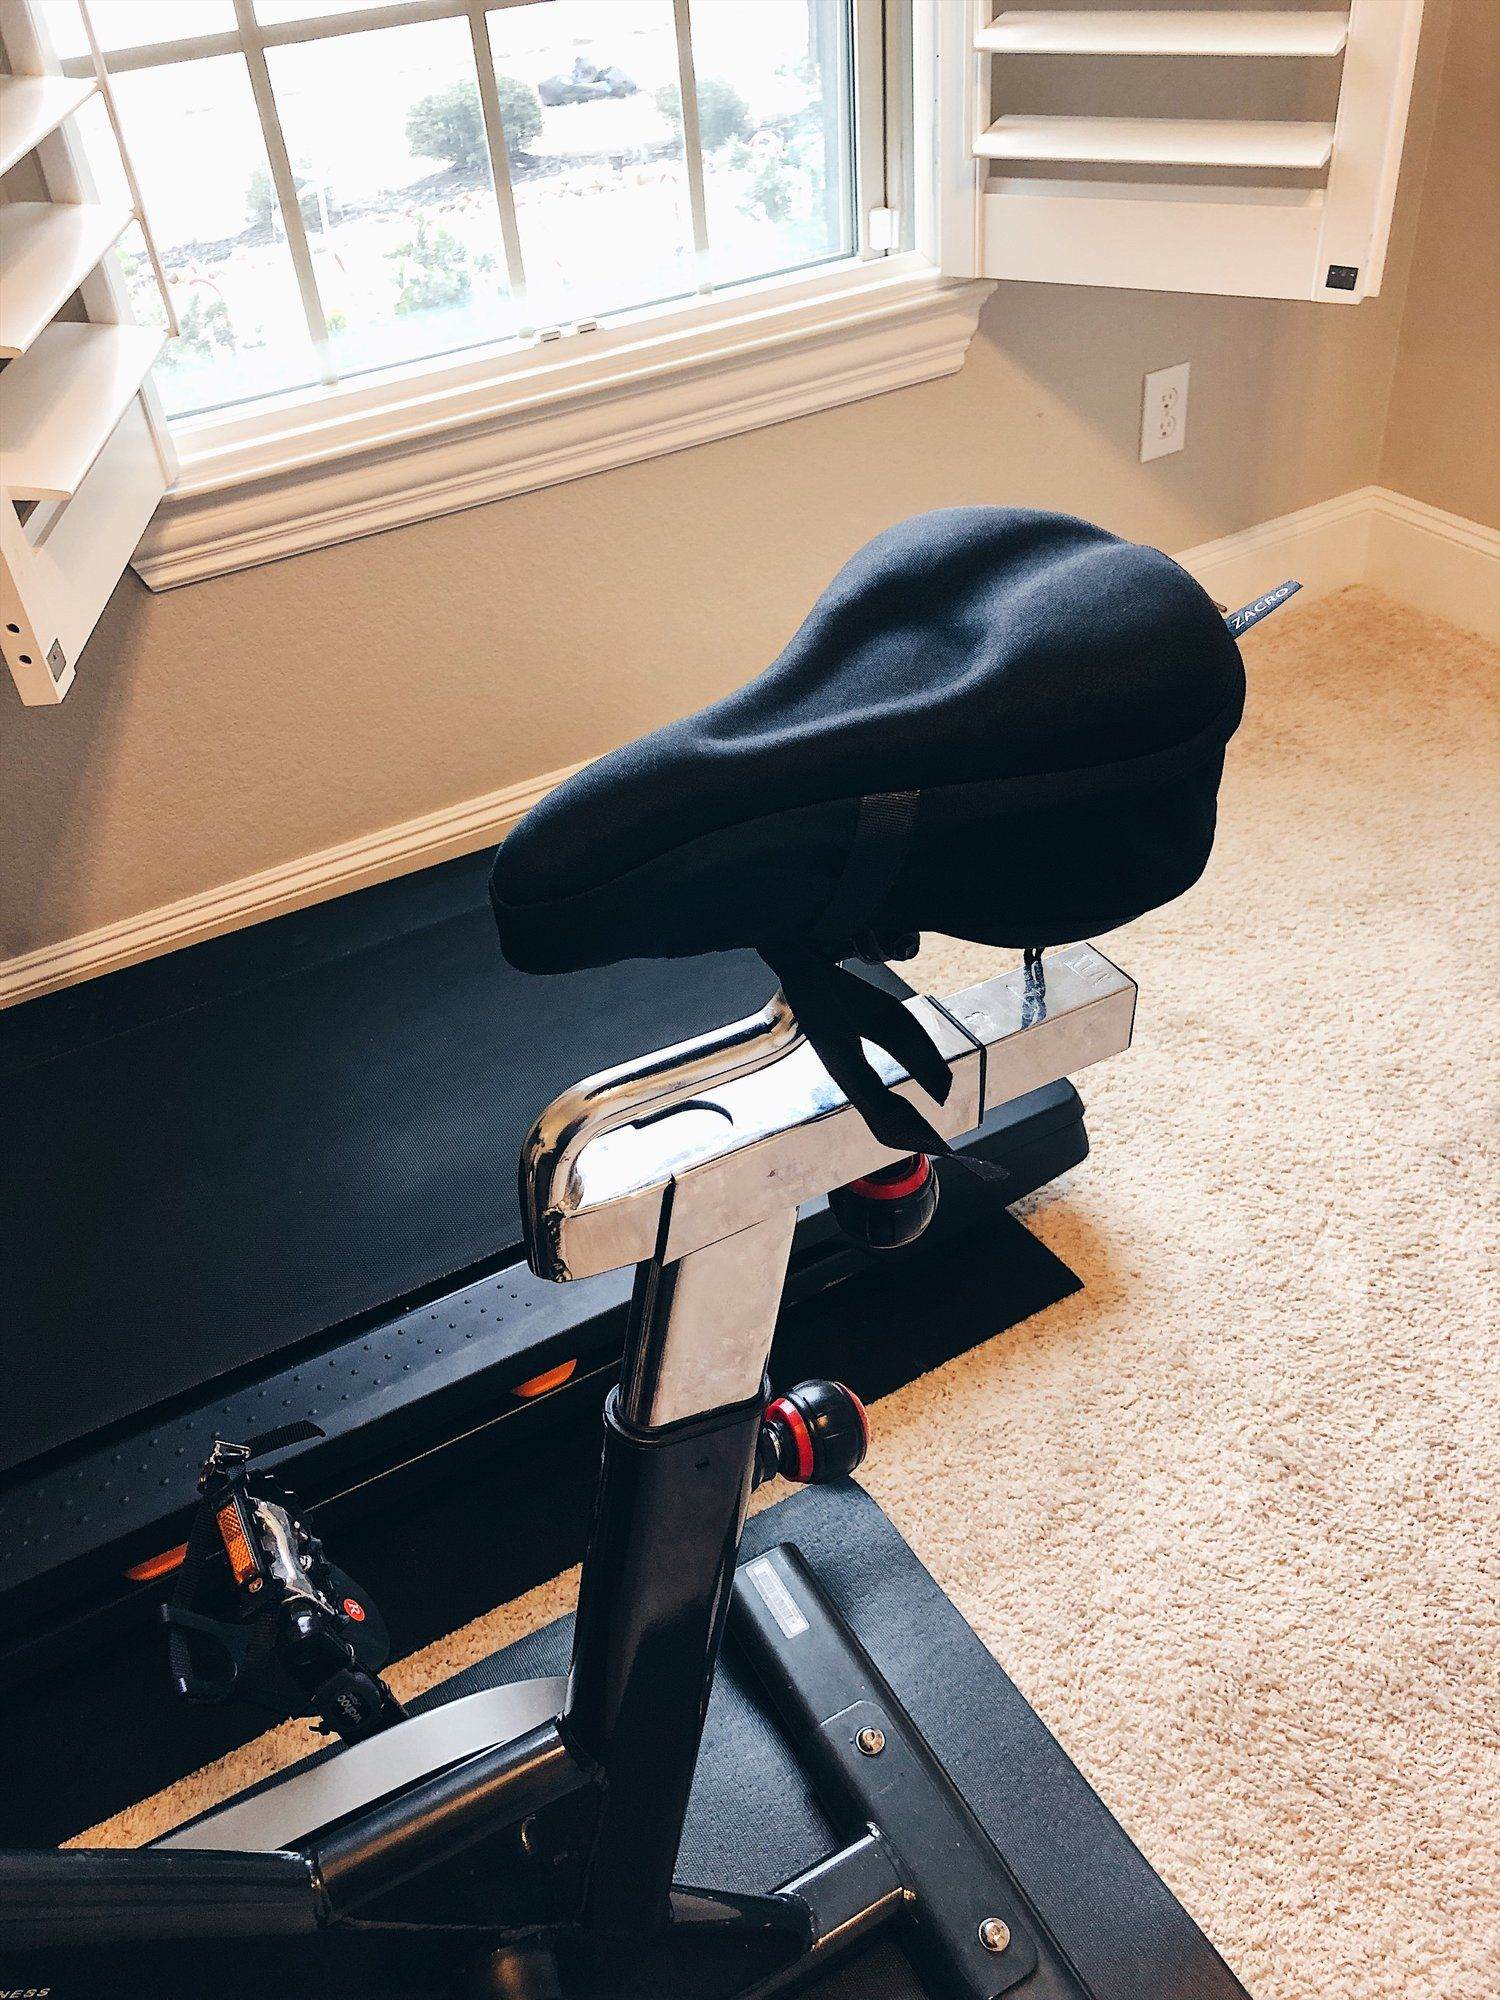 A Peloton Alternative My Affordable Guide To Spinning At Home Peloton Bike Spinning Alternative